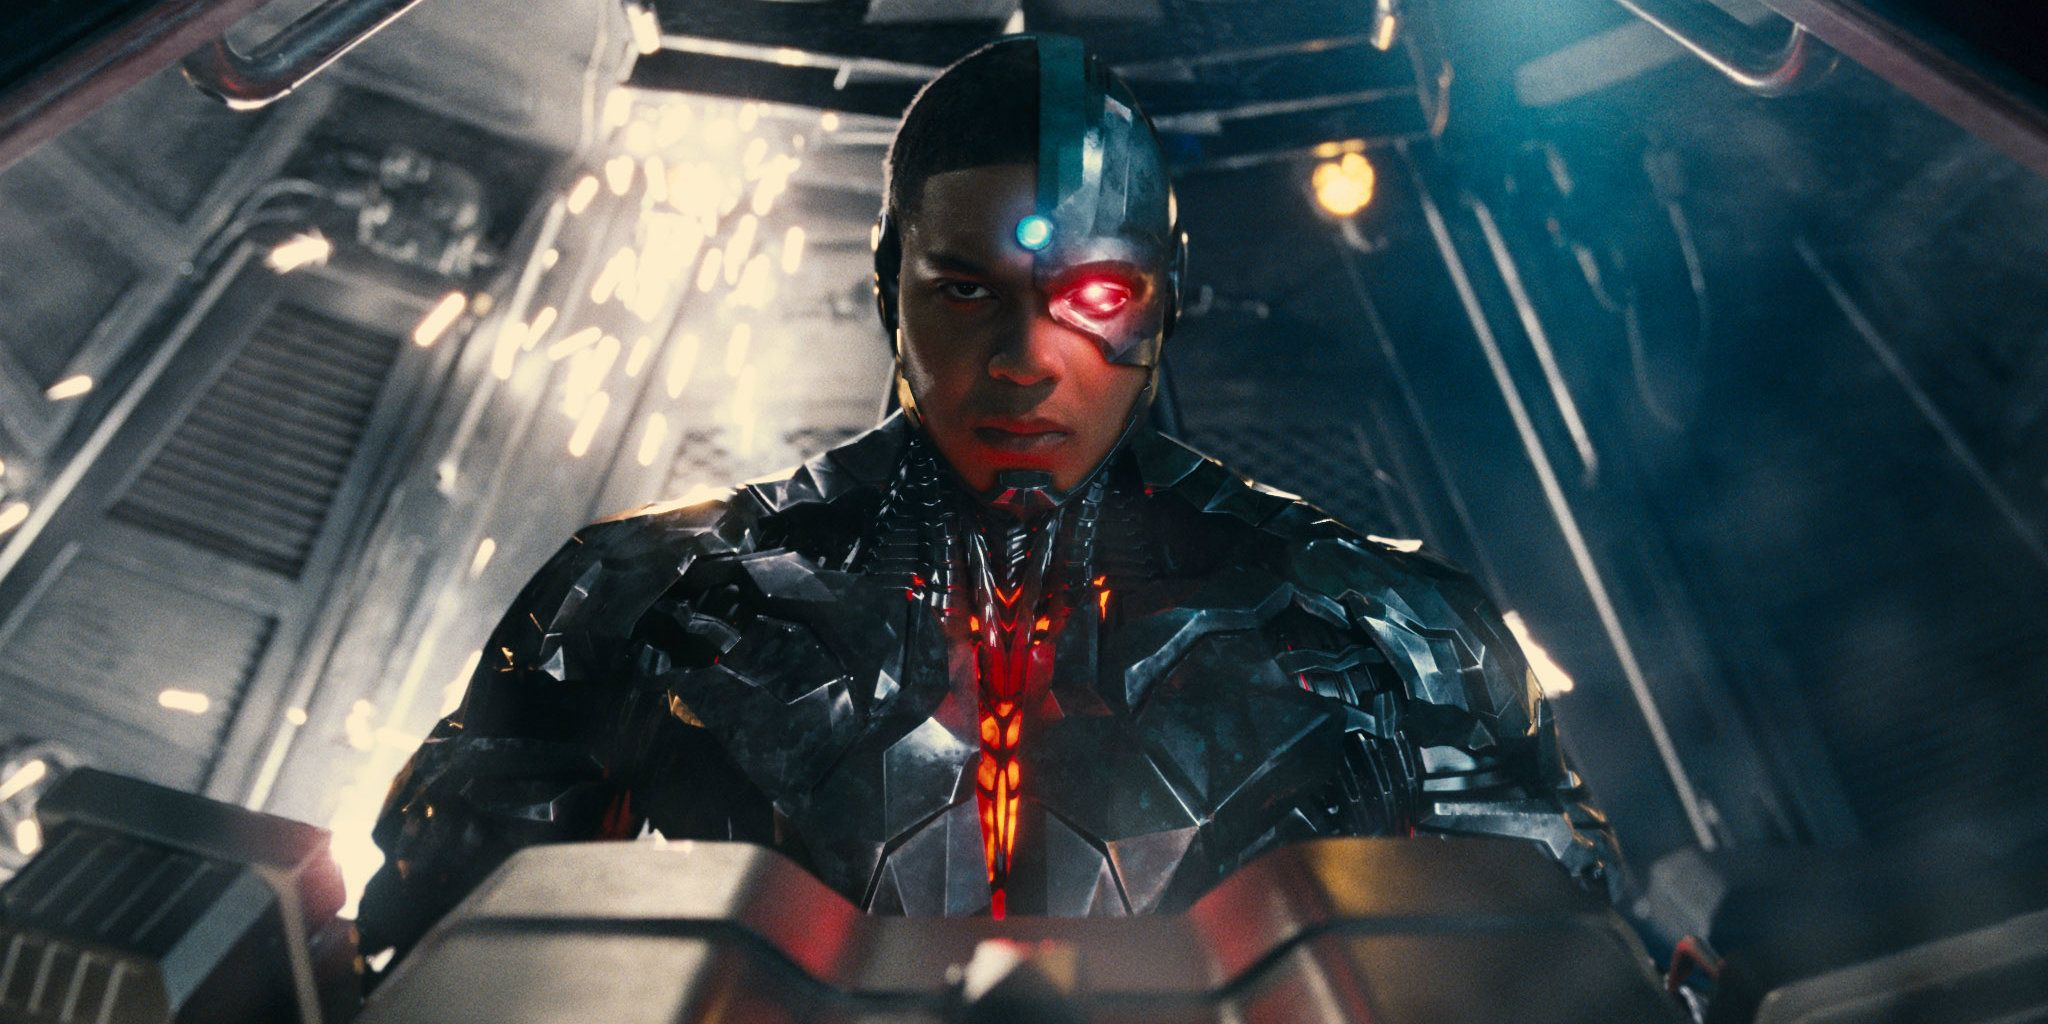 Justice League Star Ray Fisher Dresses As Cyborg For Halloween